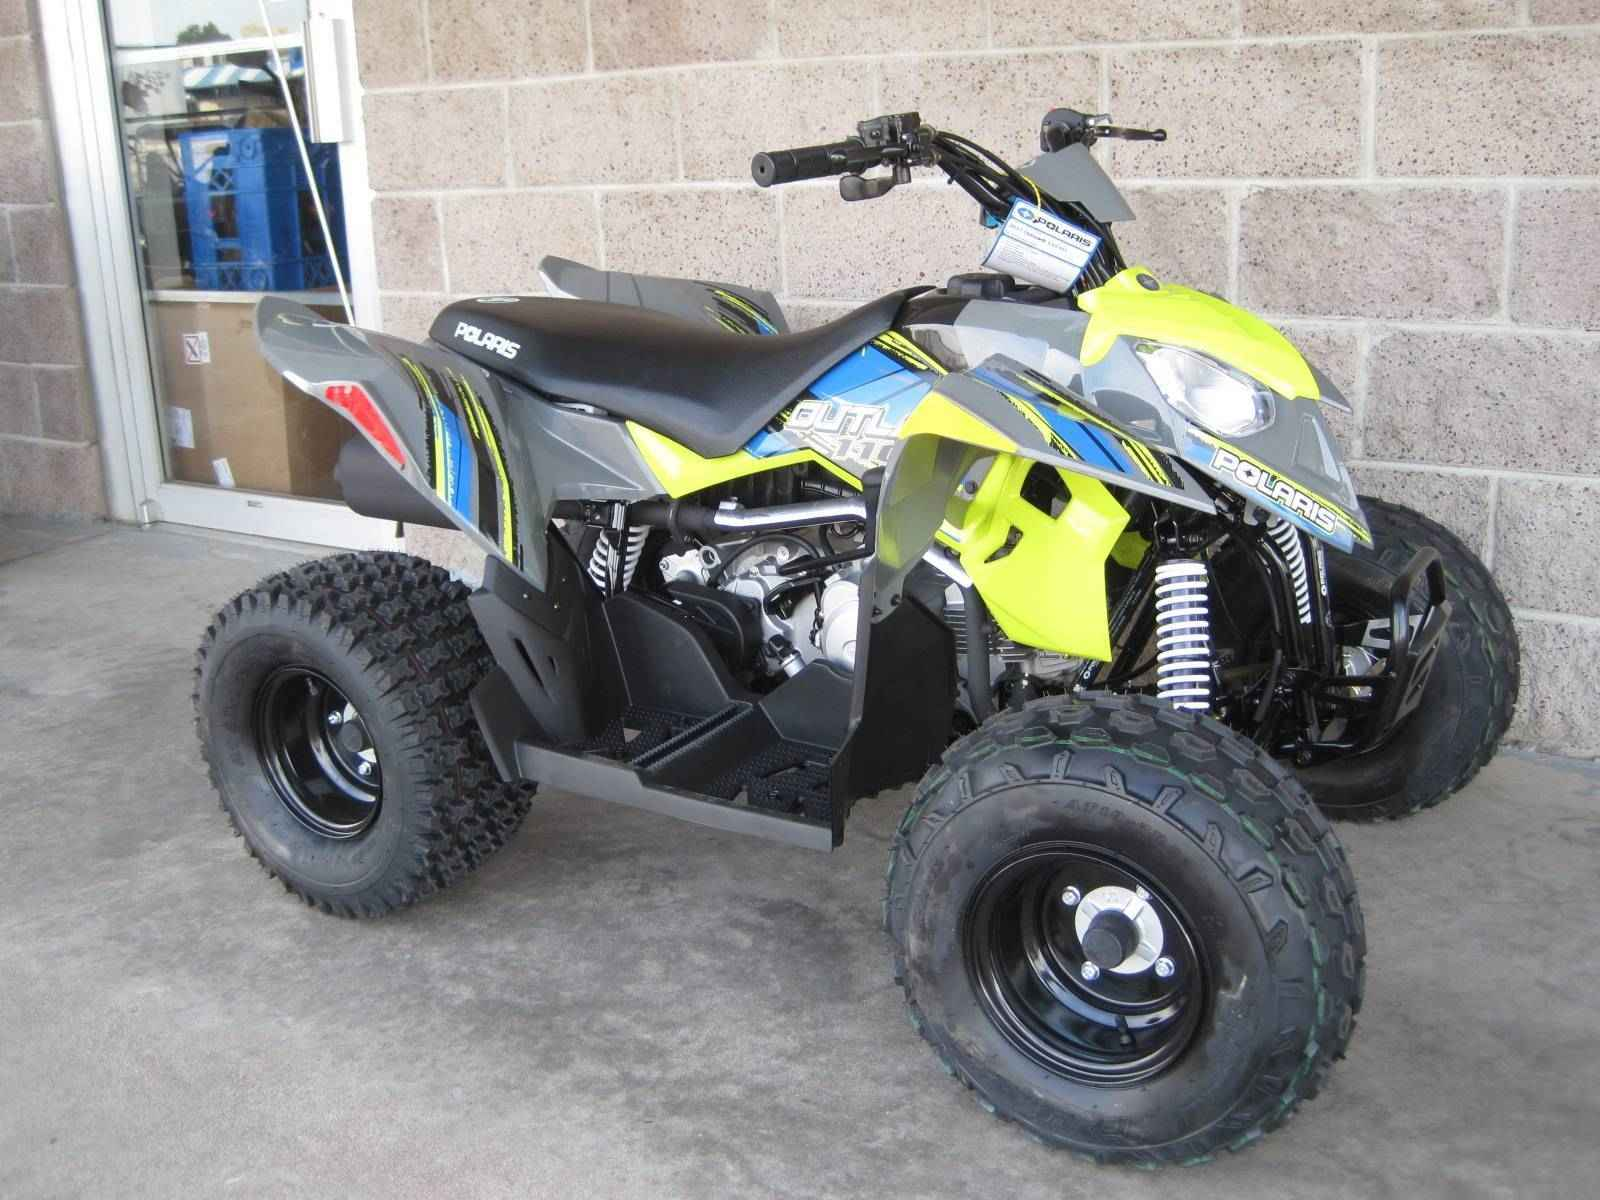 new 2017 polaris outlaw 110 atvs for sale in colorado on atv trades. Black Bedroom Furniture Sets. Home Design Ideas